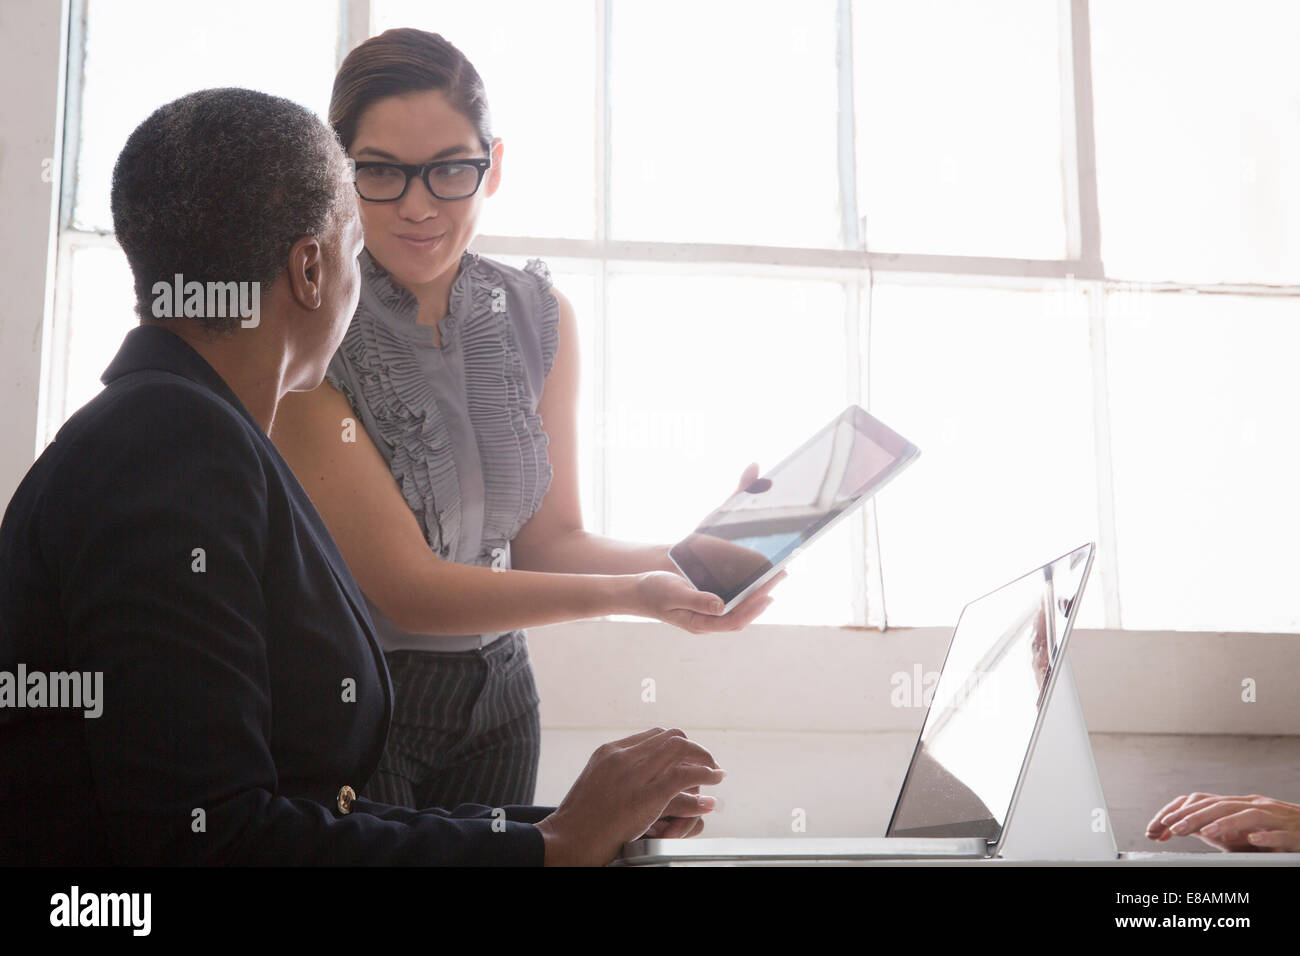 Businesswoman showing colleague digital tablet - Stock Image